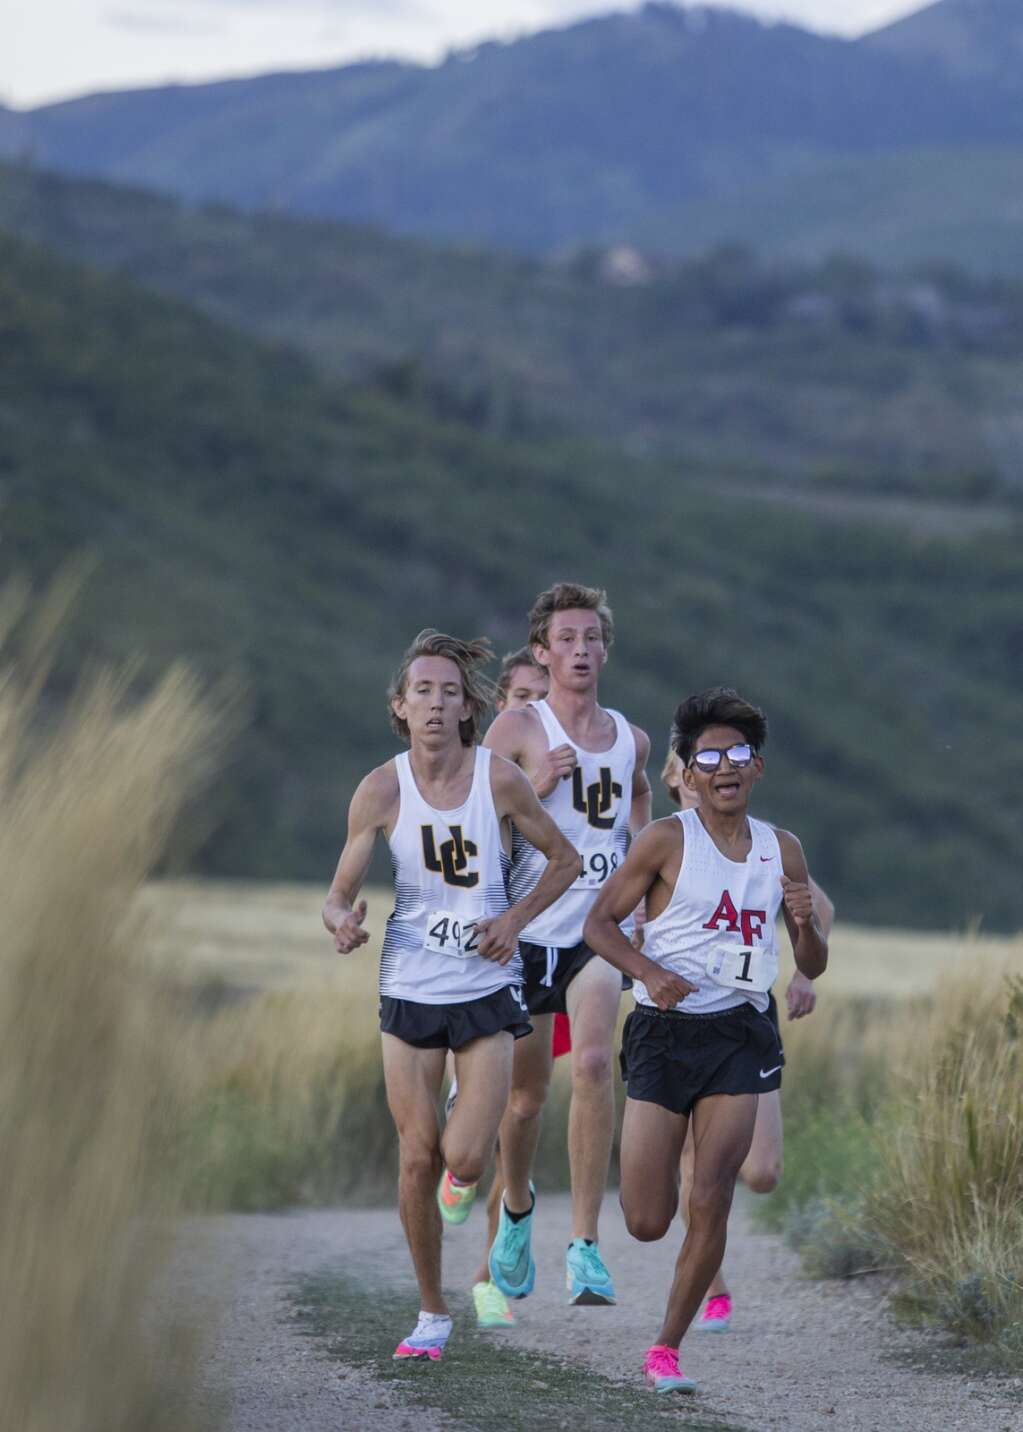 Boys varsity runners pick up the pace as they approach the final stretch of the course during the Park City High School invitational cross country meet in Round Valley Friday evening, Sept. 10, 2021. (Tanzi Propst/Park Record)